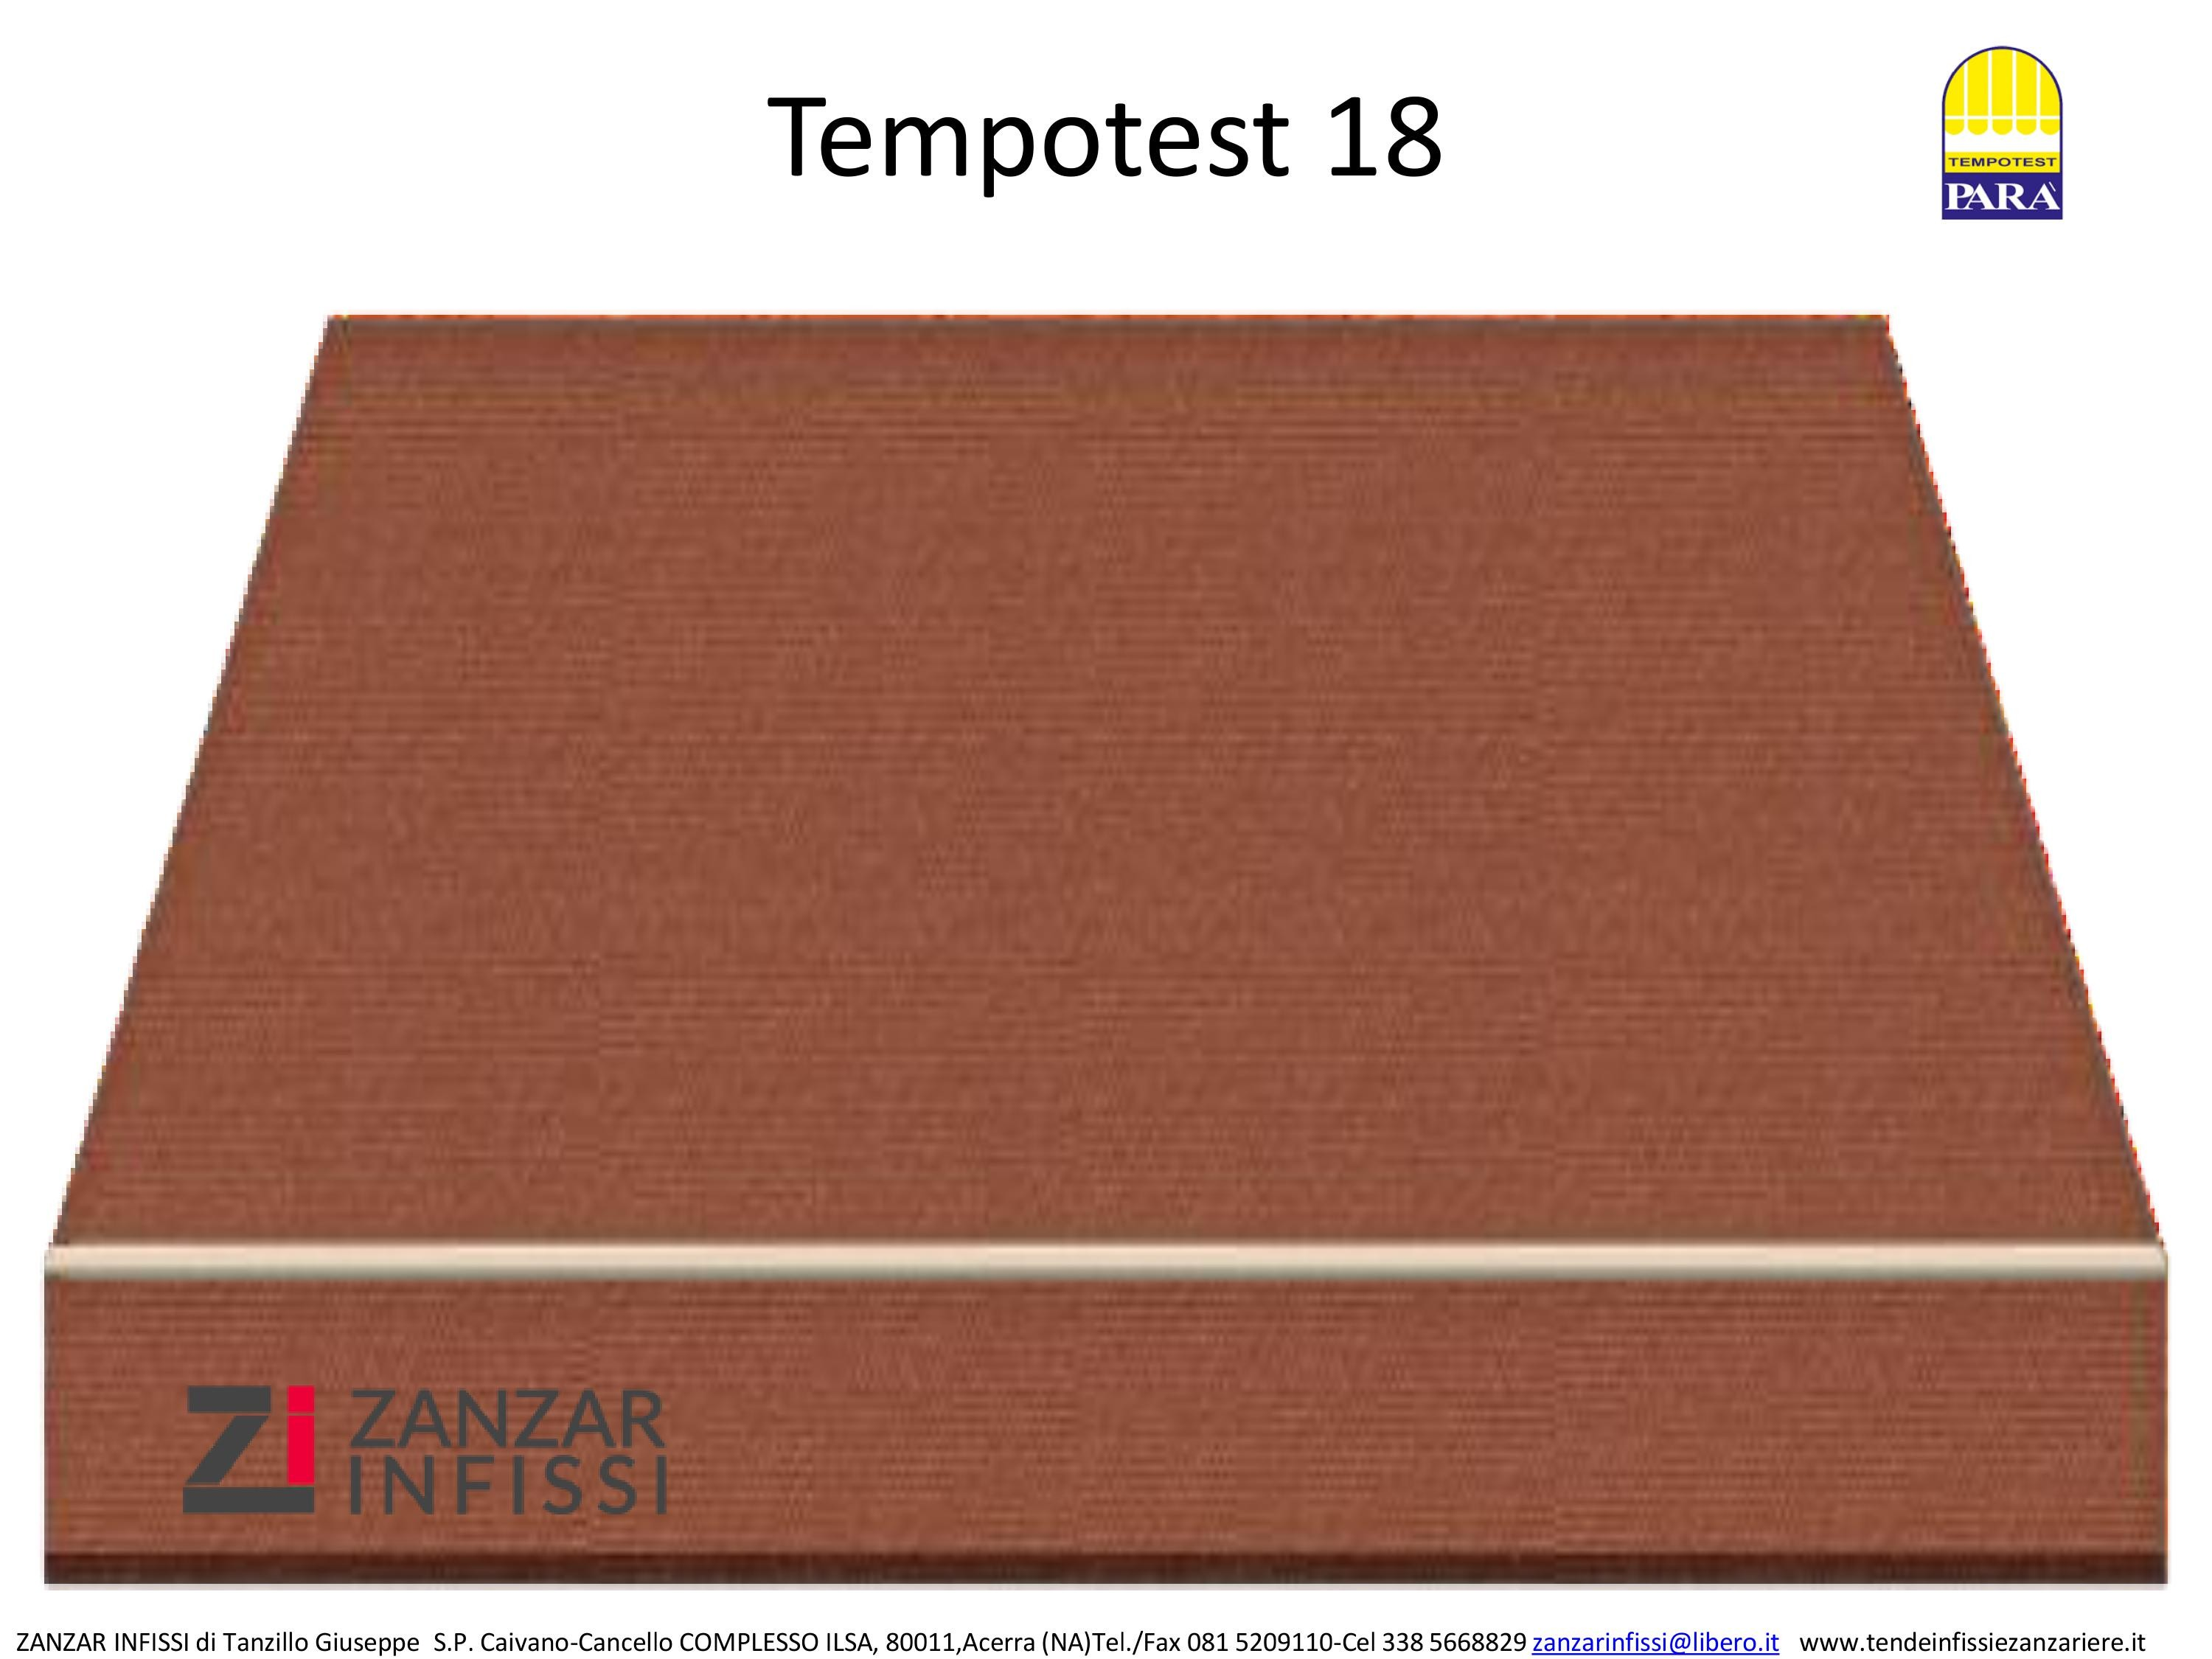 Tempotest 18